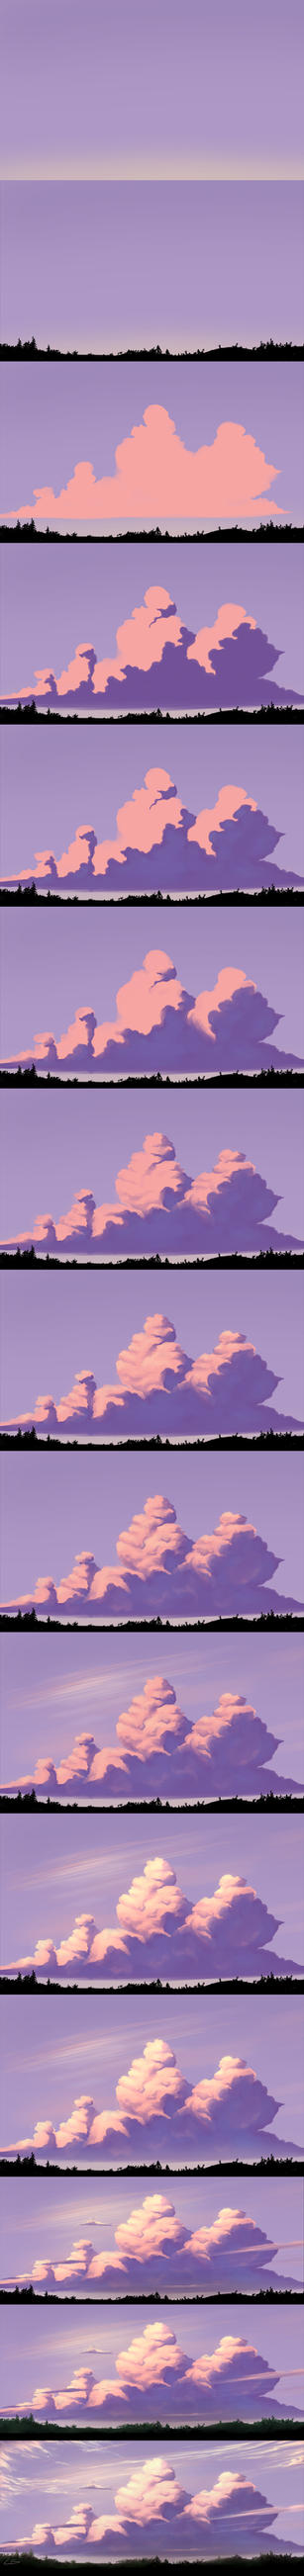 Evening Sky - Step by Step by Dea-89